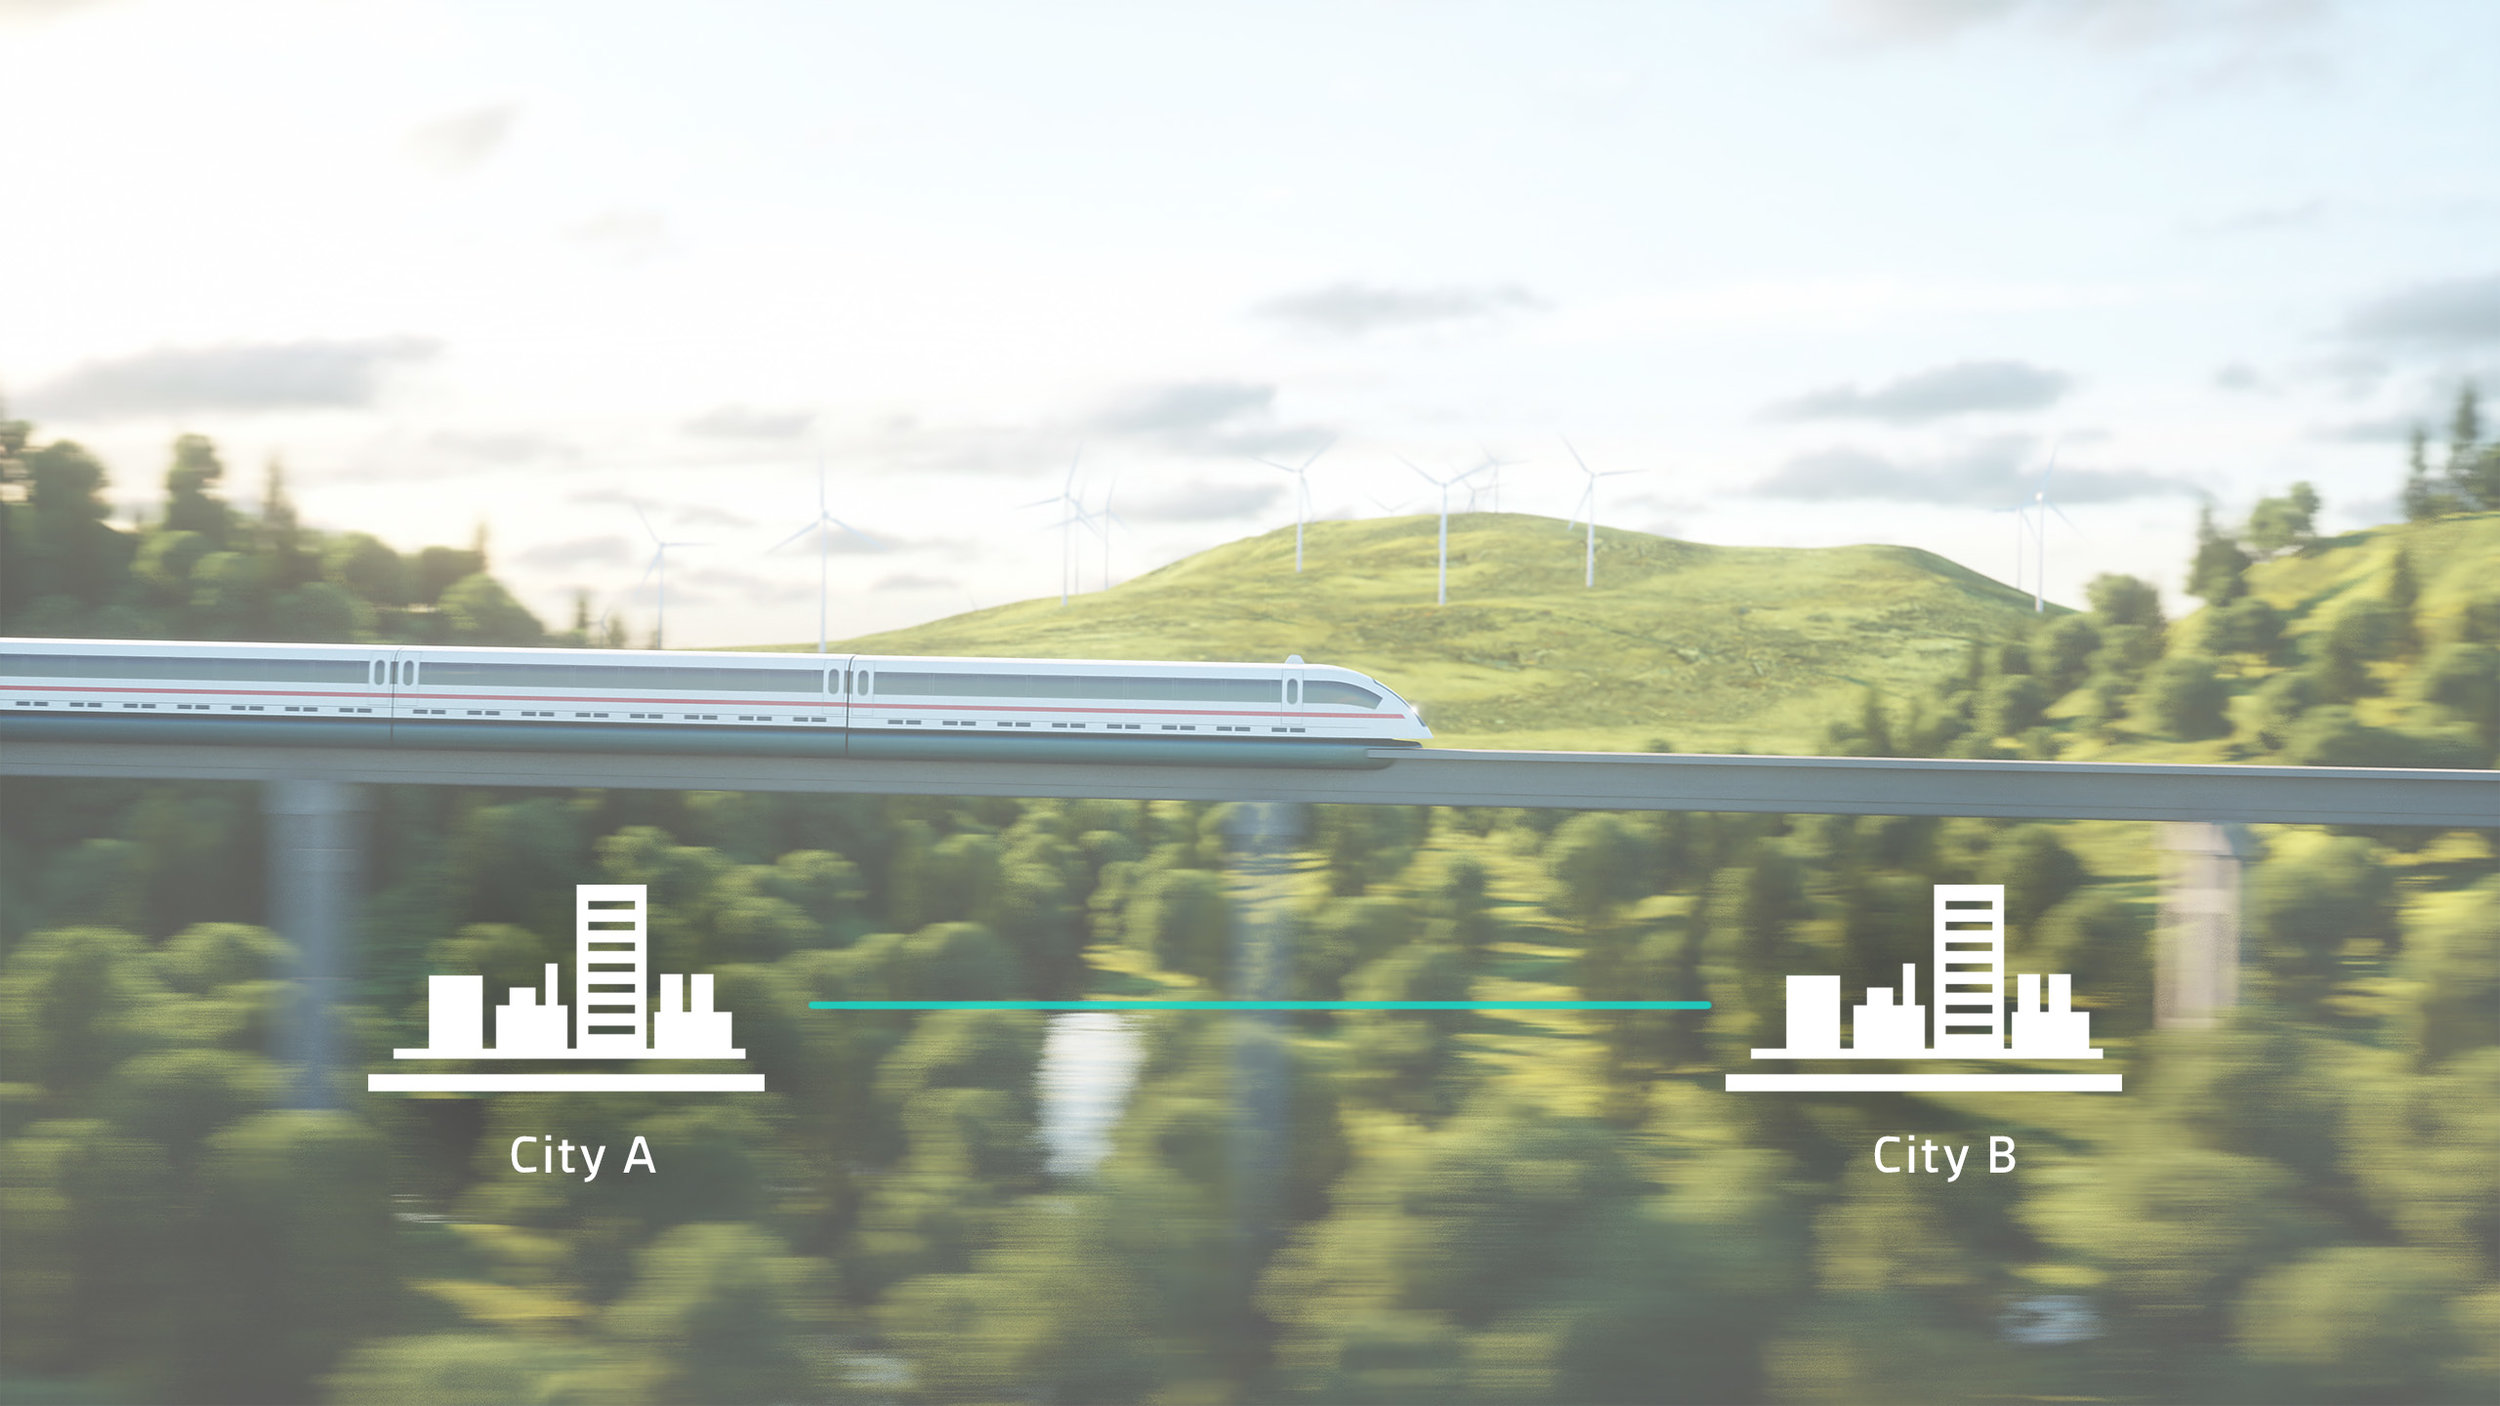 The modular system can be expanded to inter-city level, where cities are connected by maglev high speed trains that consist of a combination of passenger carriages as well as cargo carriages which share the same logistics system across the borders. This way the entire transportation system can be synchronized to increase efficiency, lower costs and conserve resources.